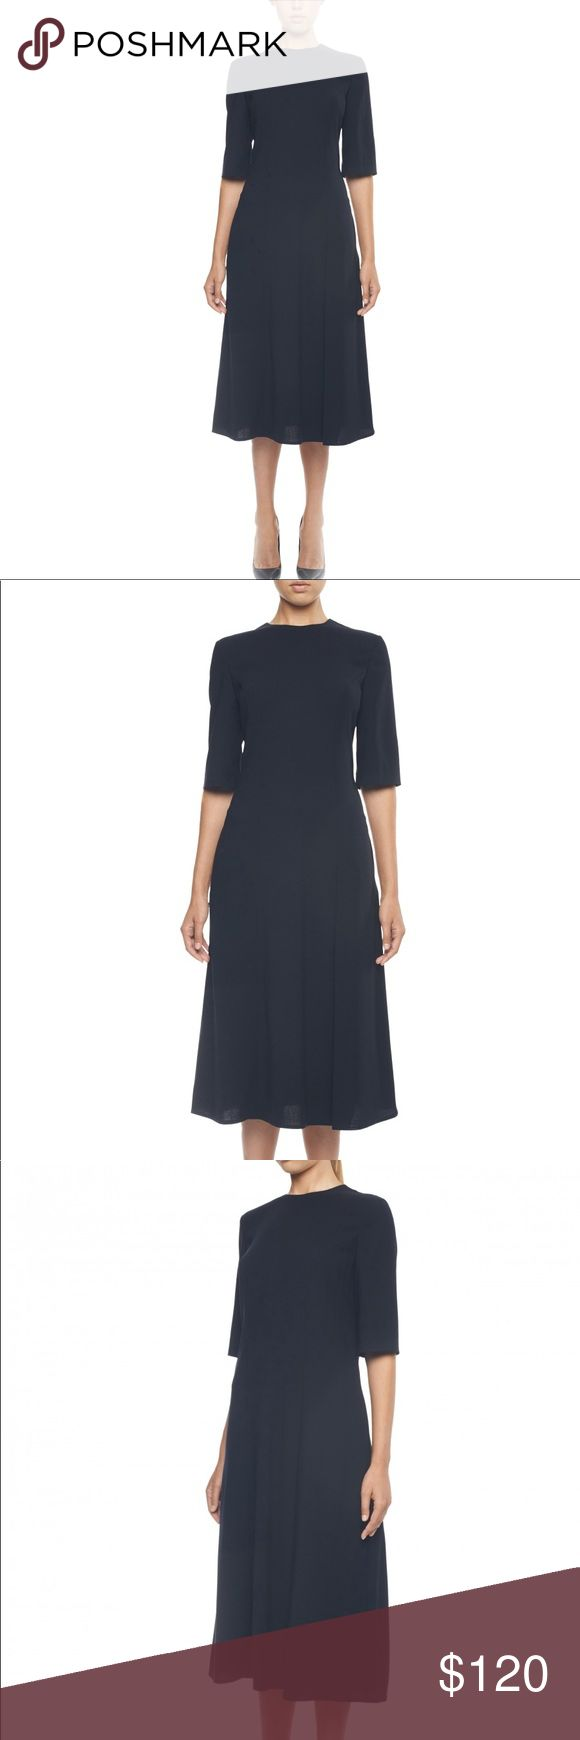 Black Woolen Day Dress Spot on for day-to-night appeal, from work to your favorite restaurant, this woolen day dress from THEO is a versatile staple for your Autumn/Winter wardrobe. Featuring cropped sleeves and falling just below the knee, the conservative cut works in your favor for cross-functional styling. 95% WOOL 5% ELASTANE BLUE, BLACK THEO Dresses Midi